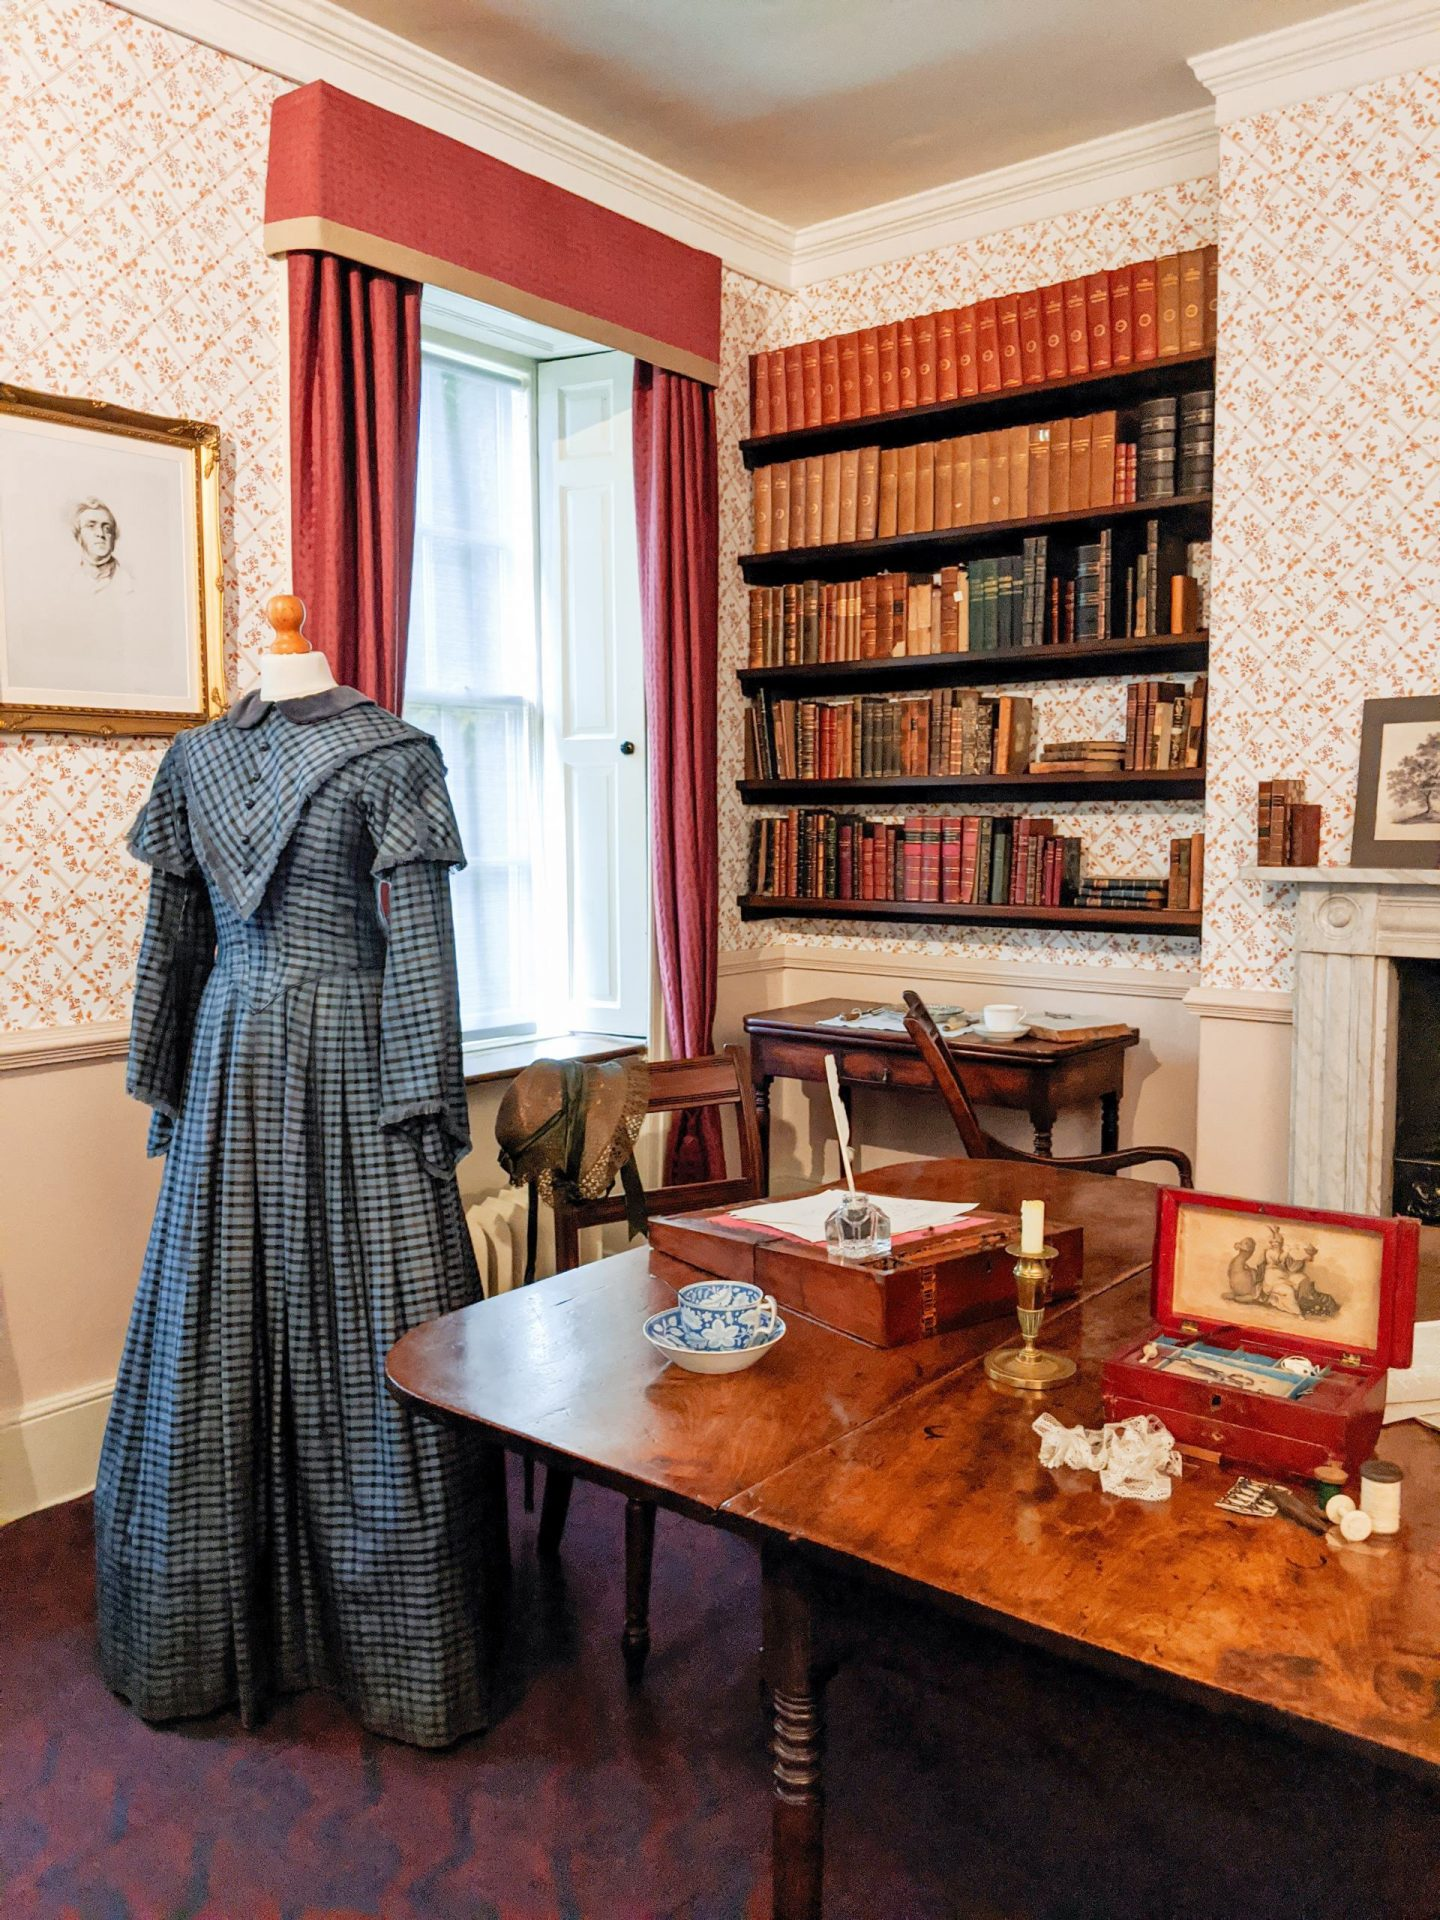 A Bookshelf in the Dining Room at Brontë Parsonage Museum